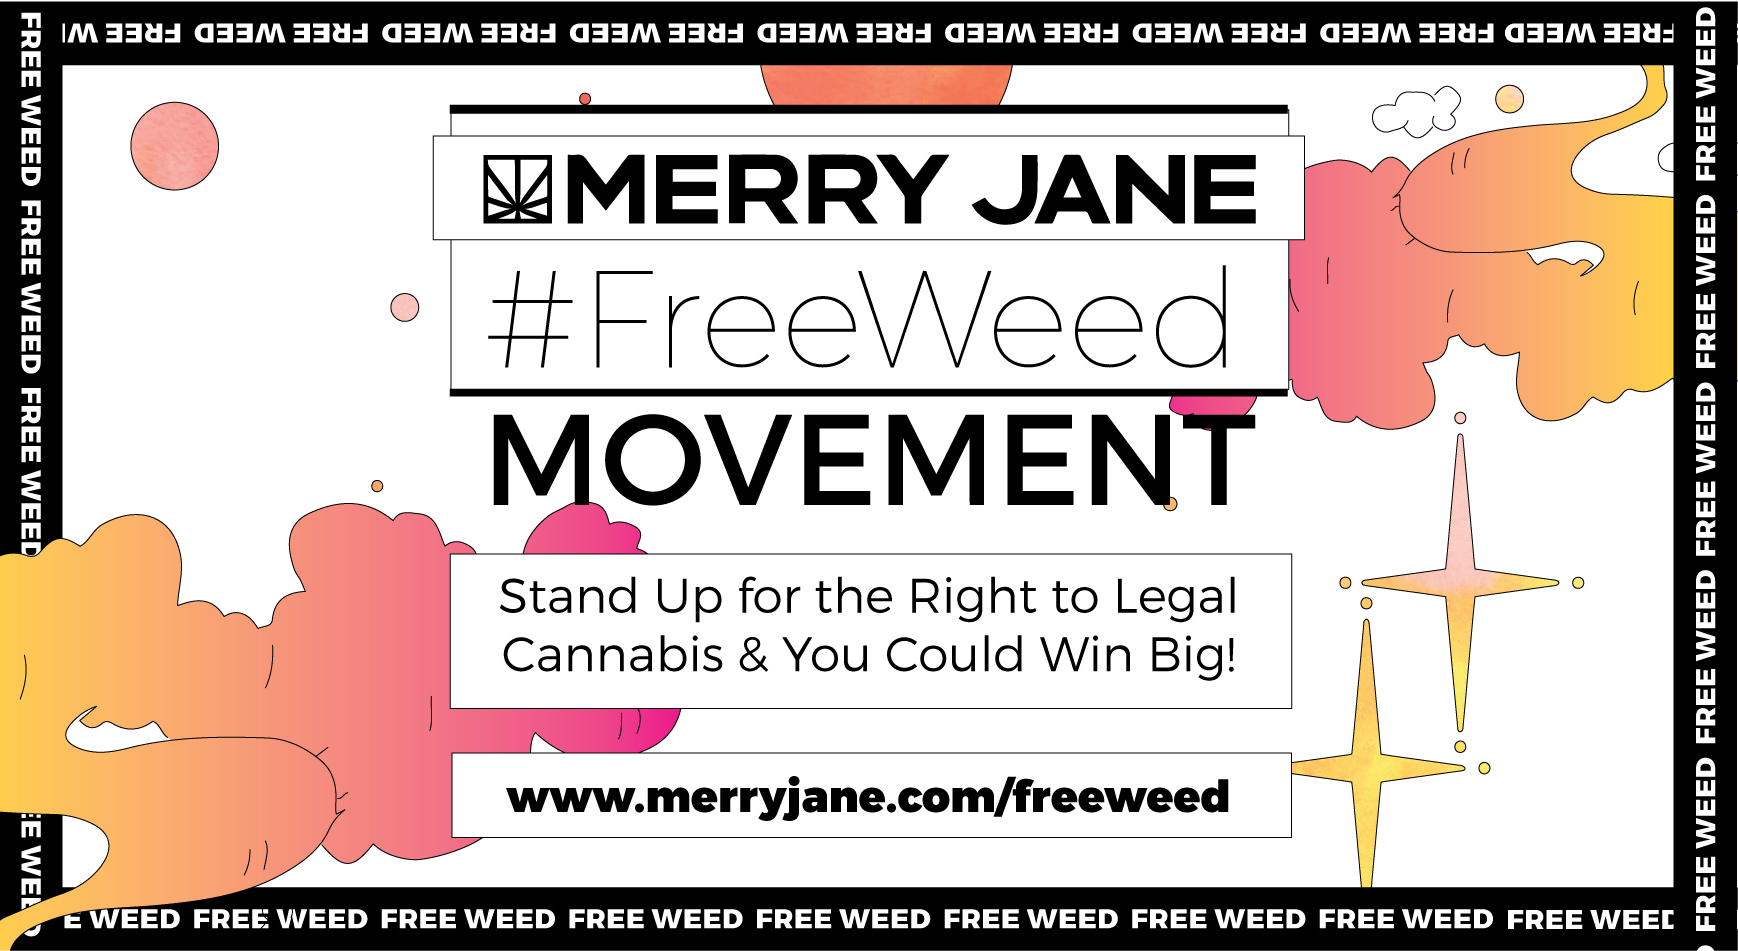 Sign our petition & speak up for legal cannabis on your social feeds, and you could win big this hazy holiday.